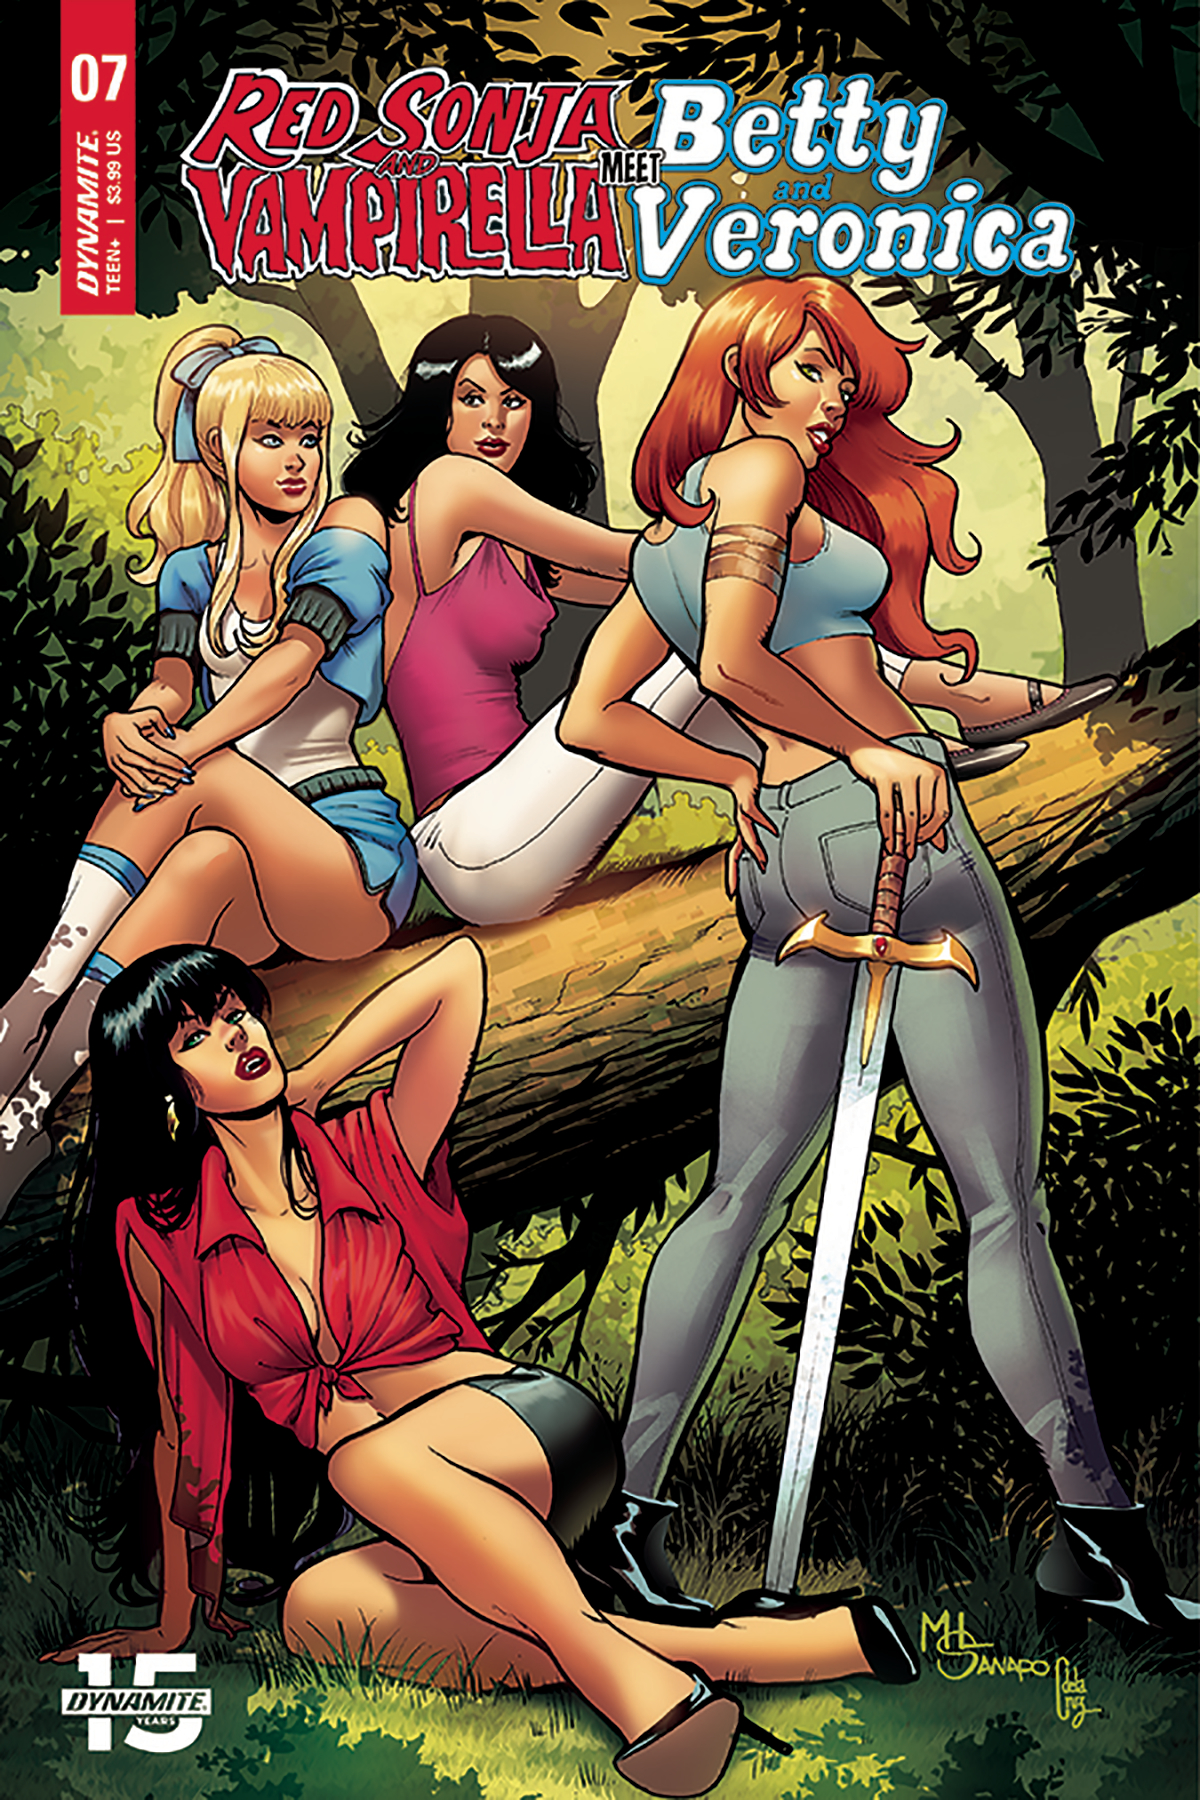 RED SONJA VAMPIRELLA BETTY VERONICA #7 CVR E SANAPO